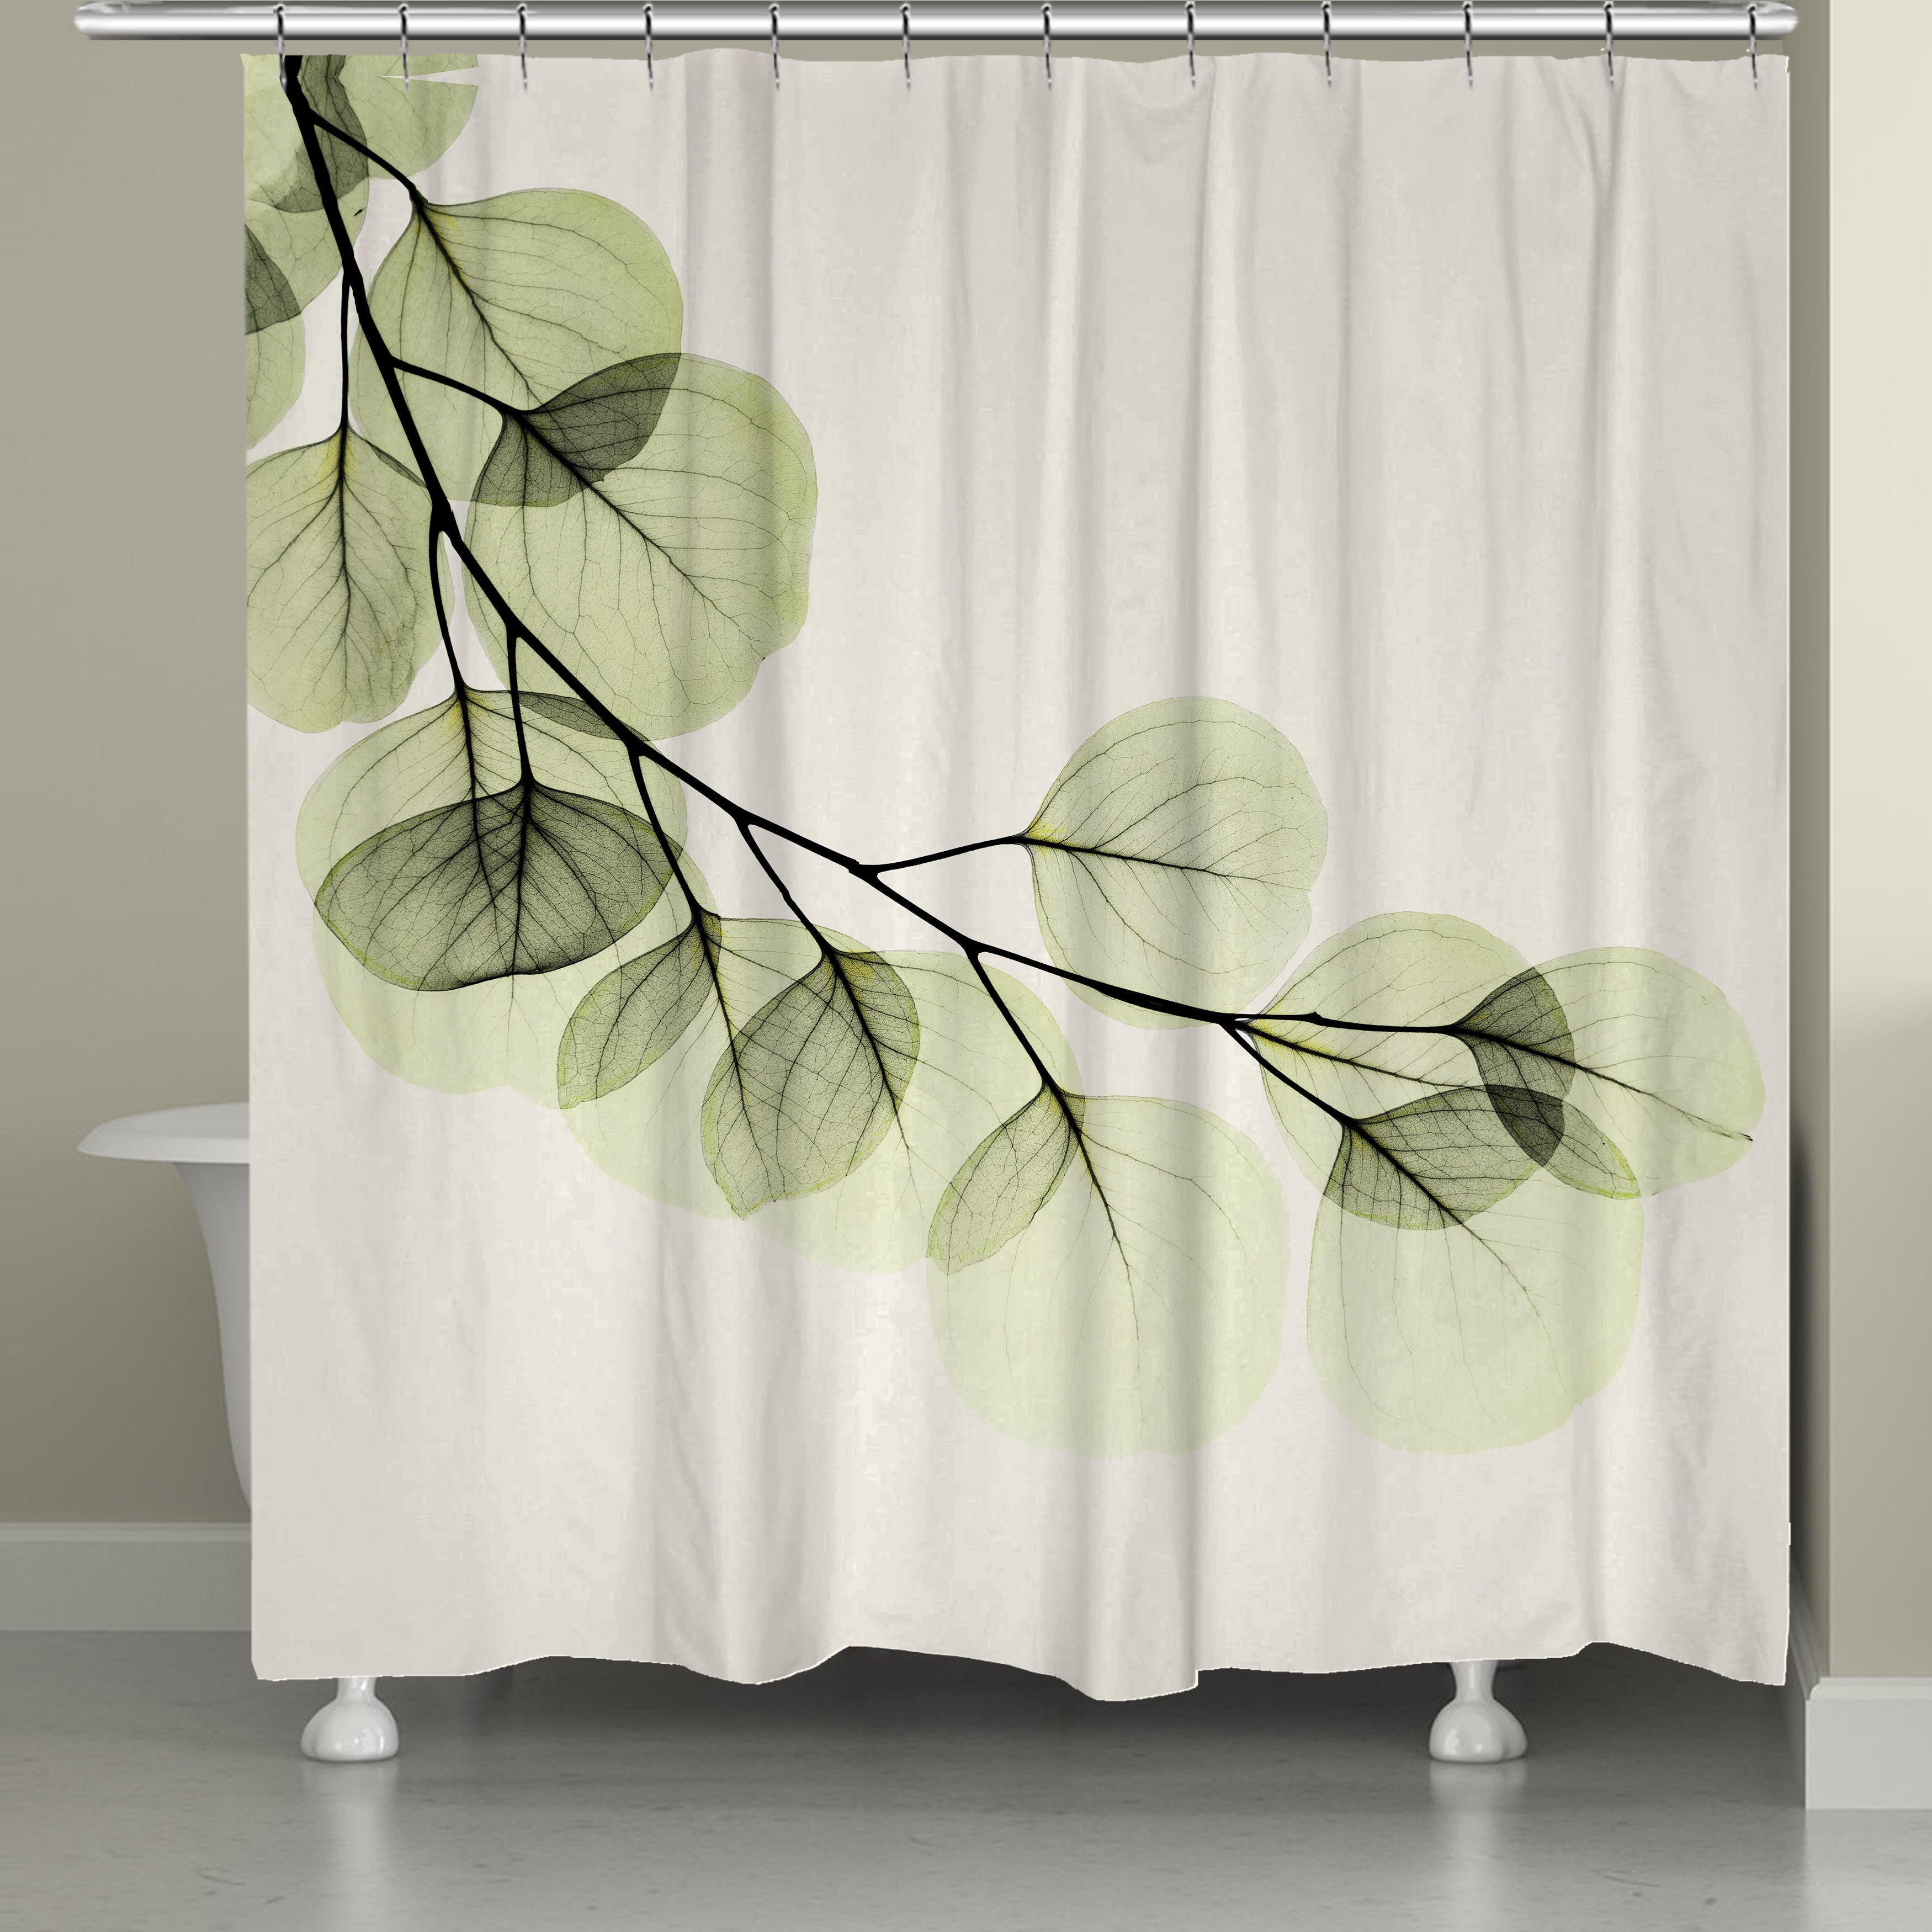 Laural Home X Ray Leaf Shower Curtain